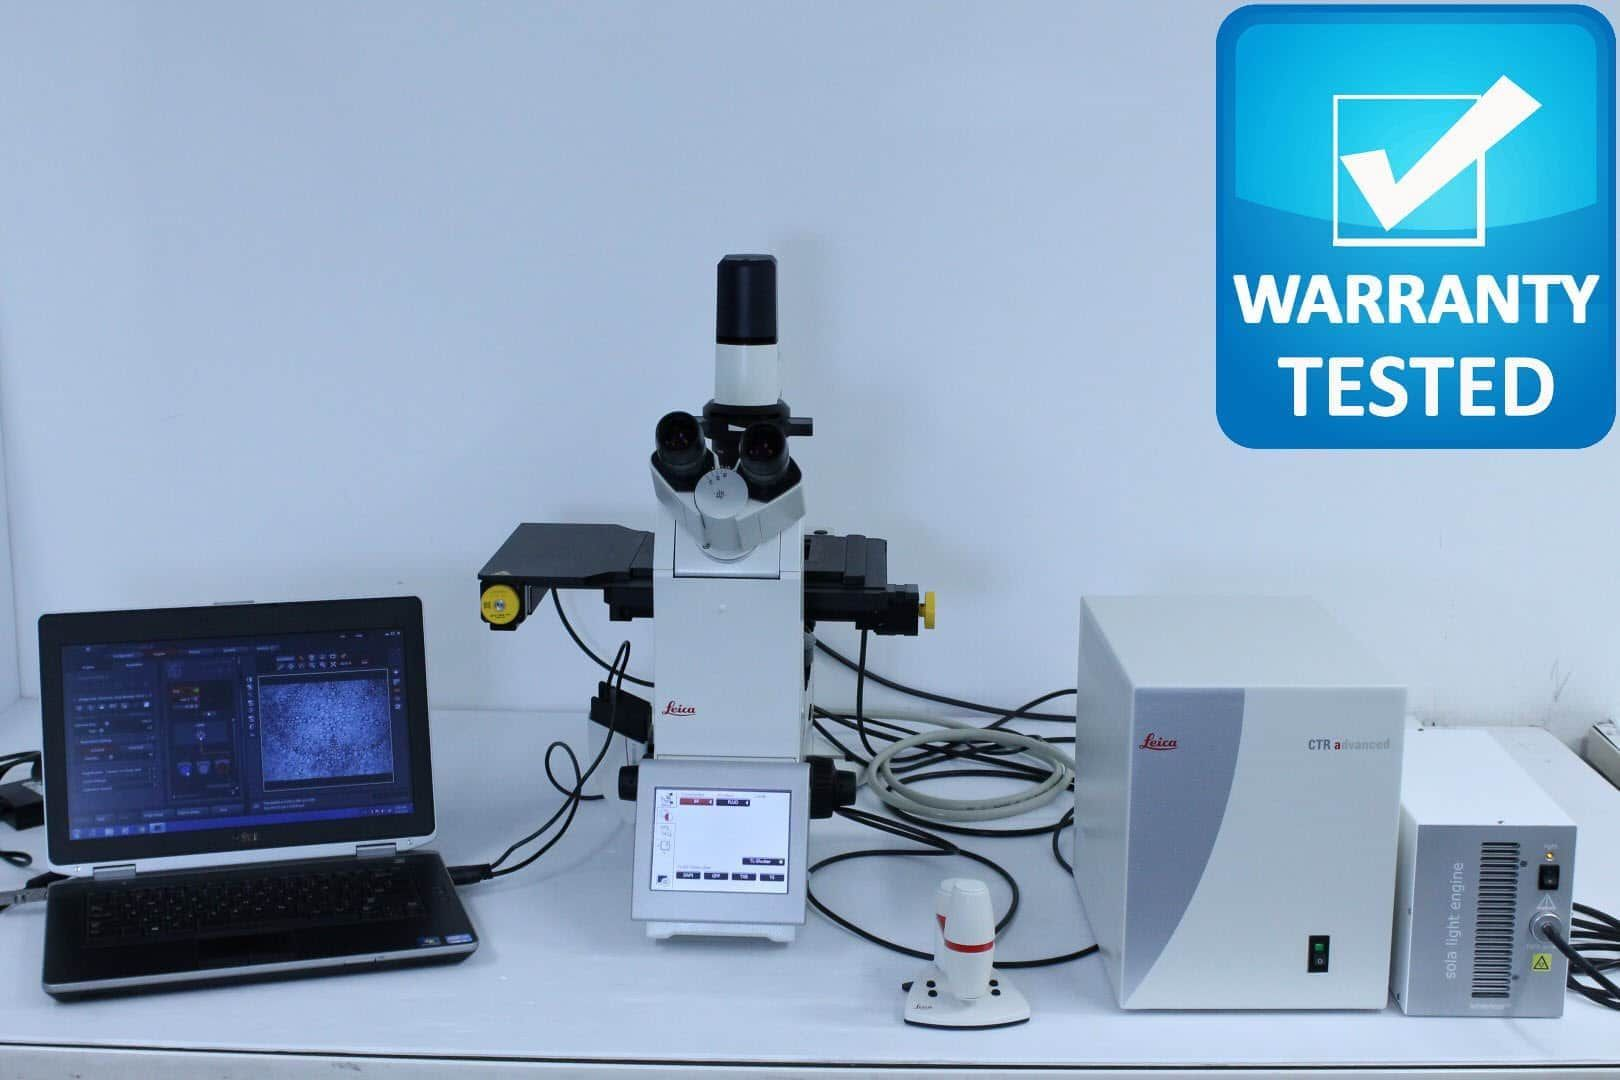 Leica DMi8 Widefield Live Cell TimeLapse Motorized Fluorescence Microscope